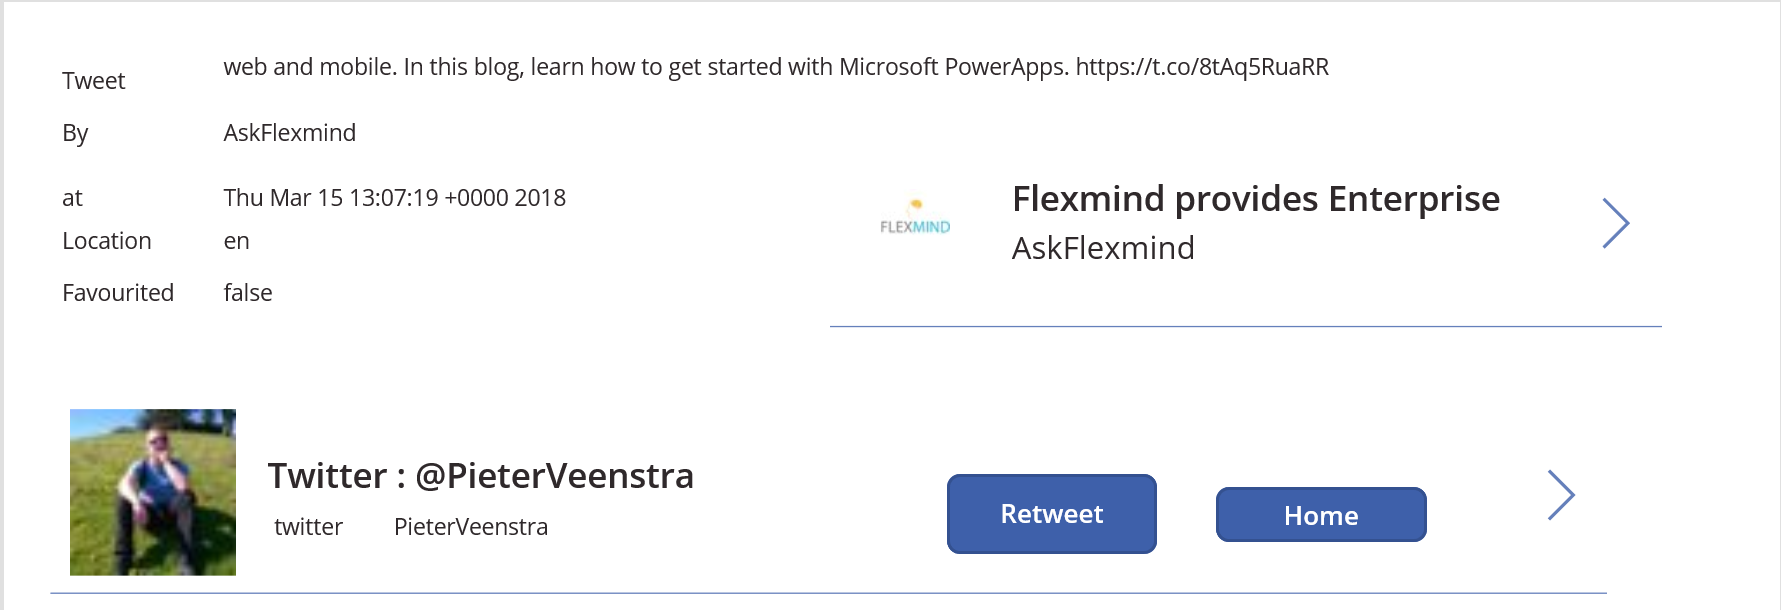 PowerApps – Are you ready to create apps in PowerApps